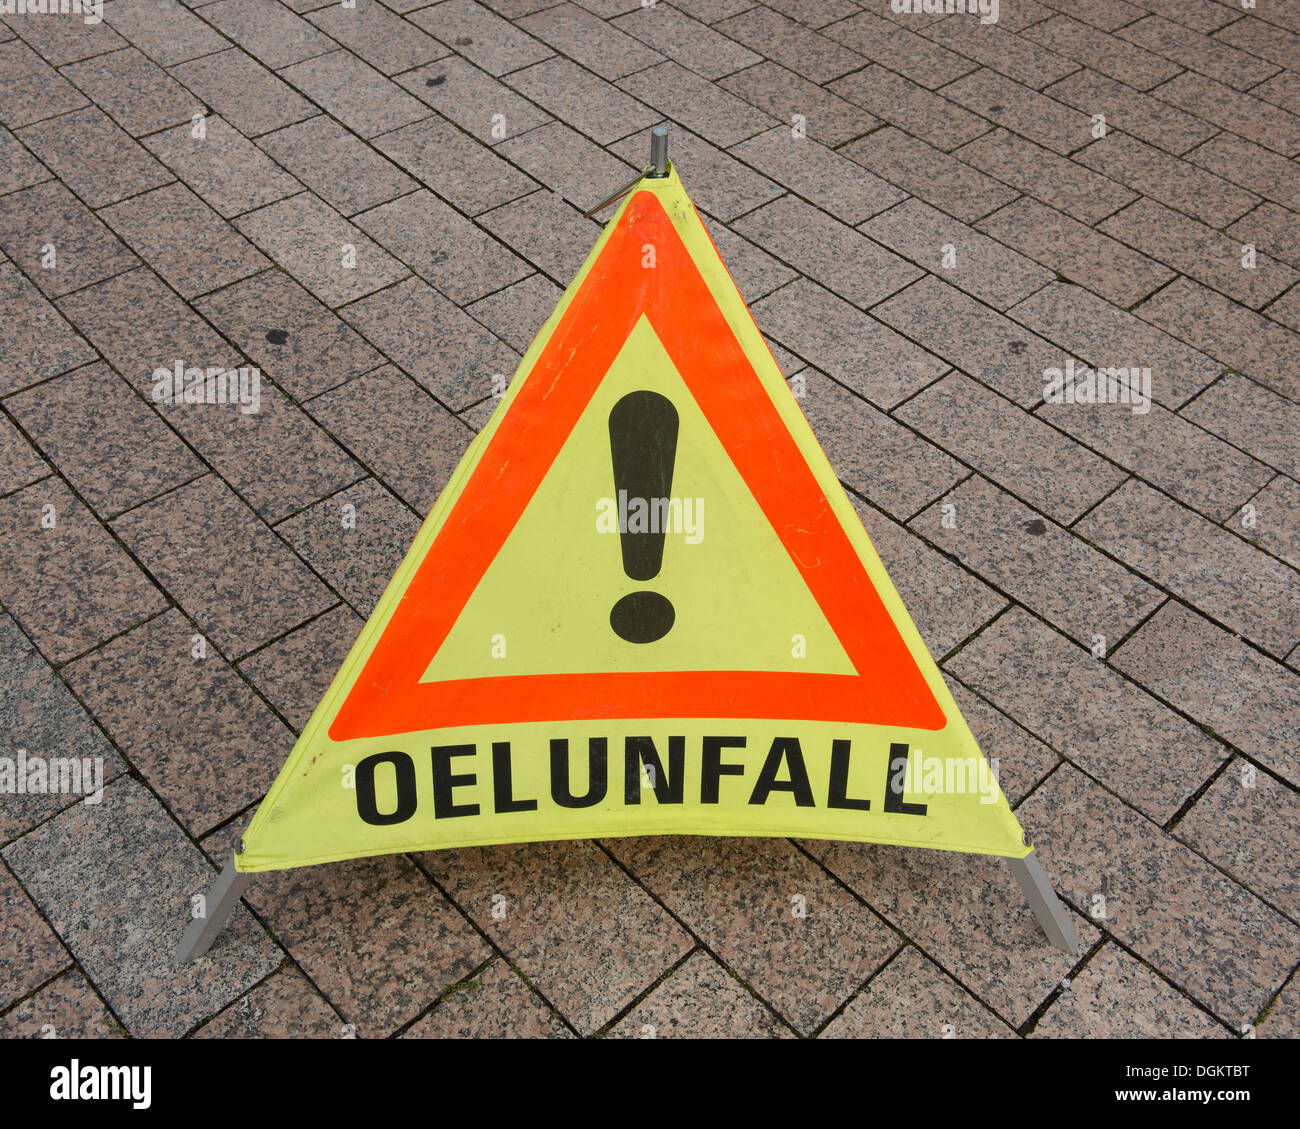 Warning triangle, folding triangle, with reference to 'Oelunfall', German for oil spill - Stock Image